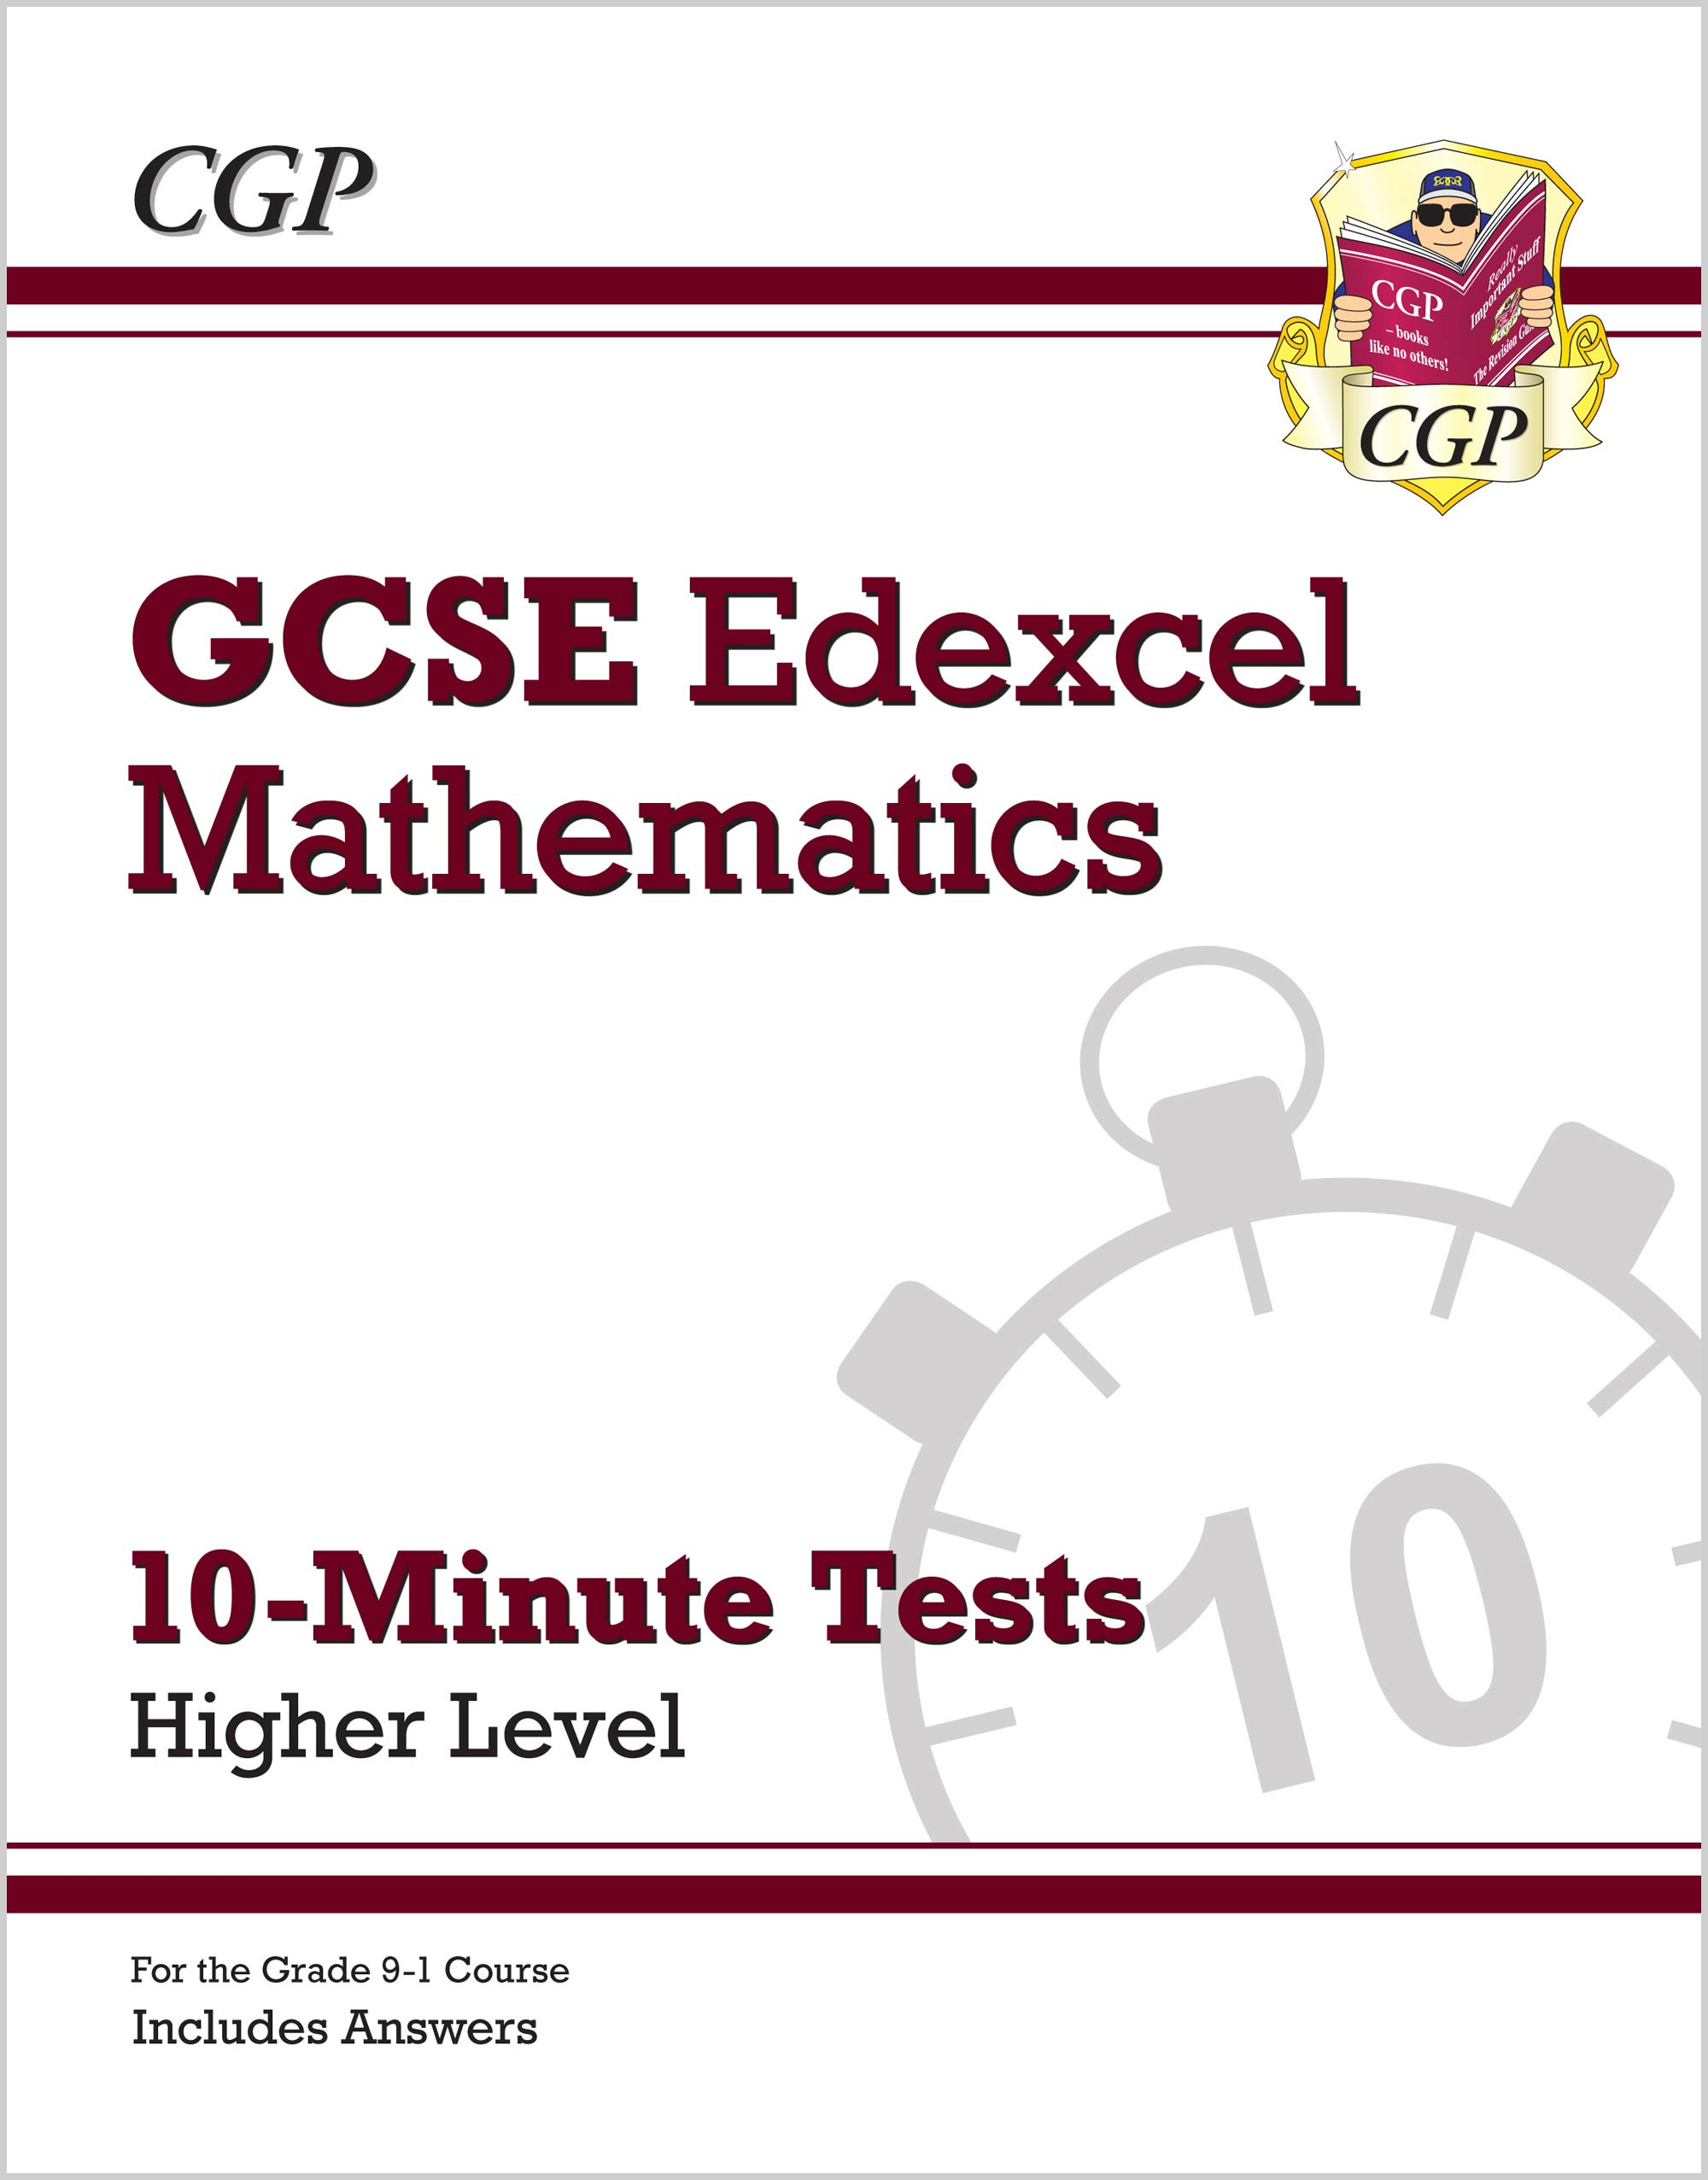 MEHXP41 - New Grade 9-1 GCSE Maths Edexcel 10-Minute Tests - Higher (includes Answers)